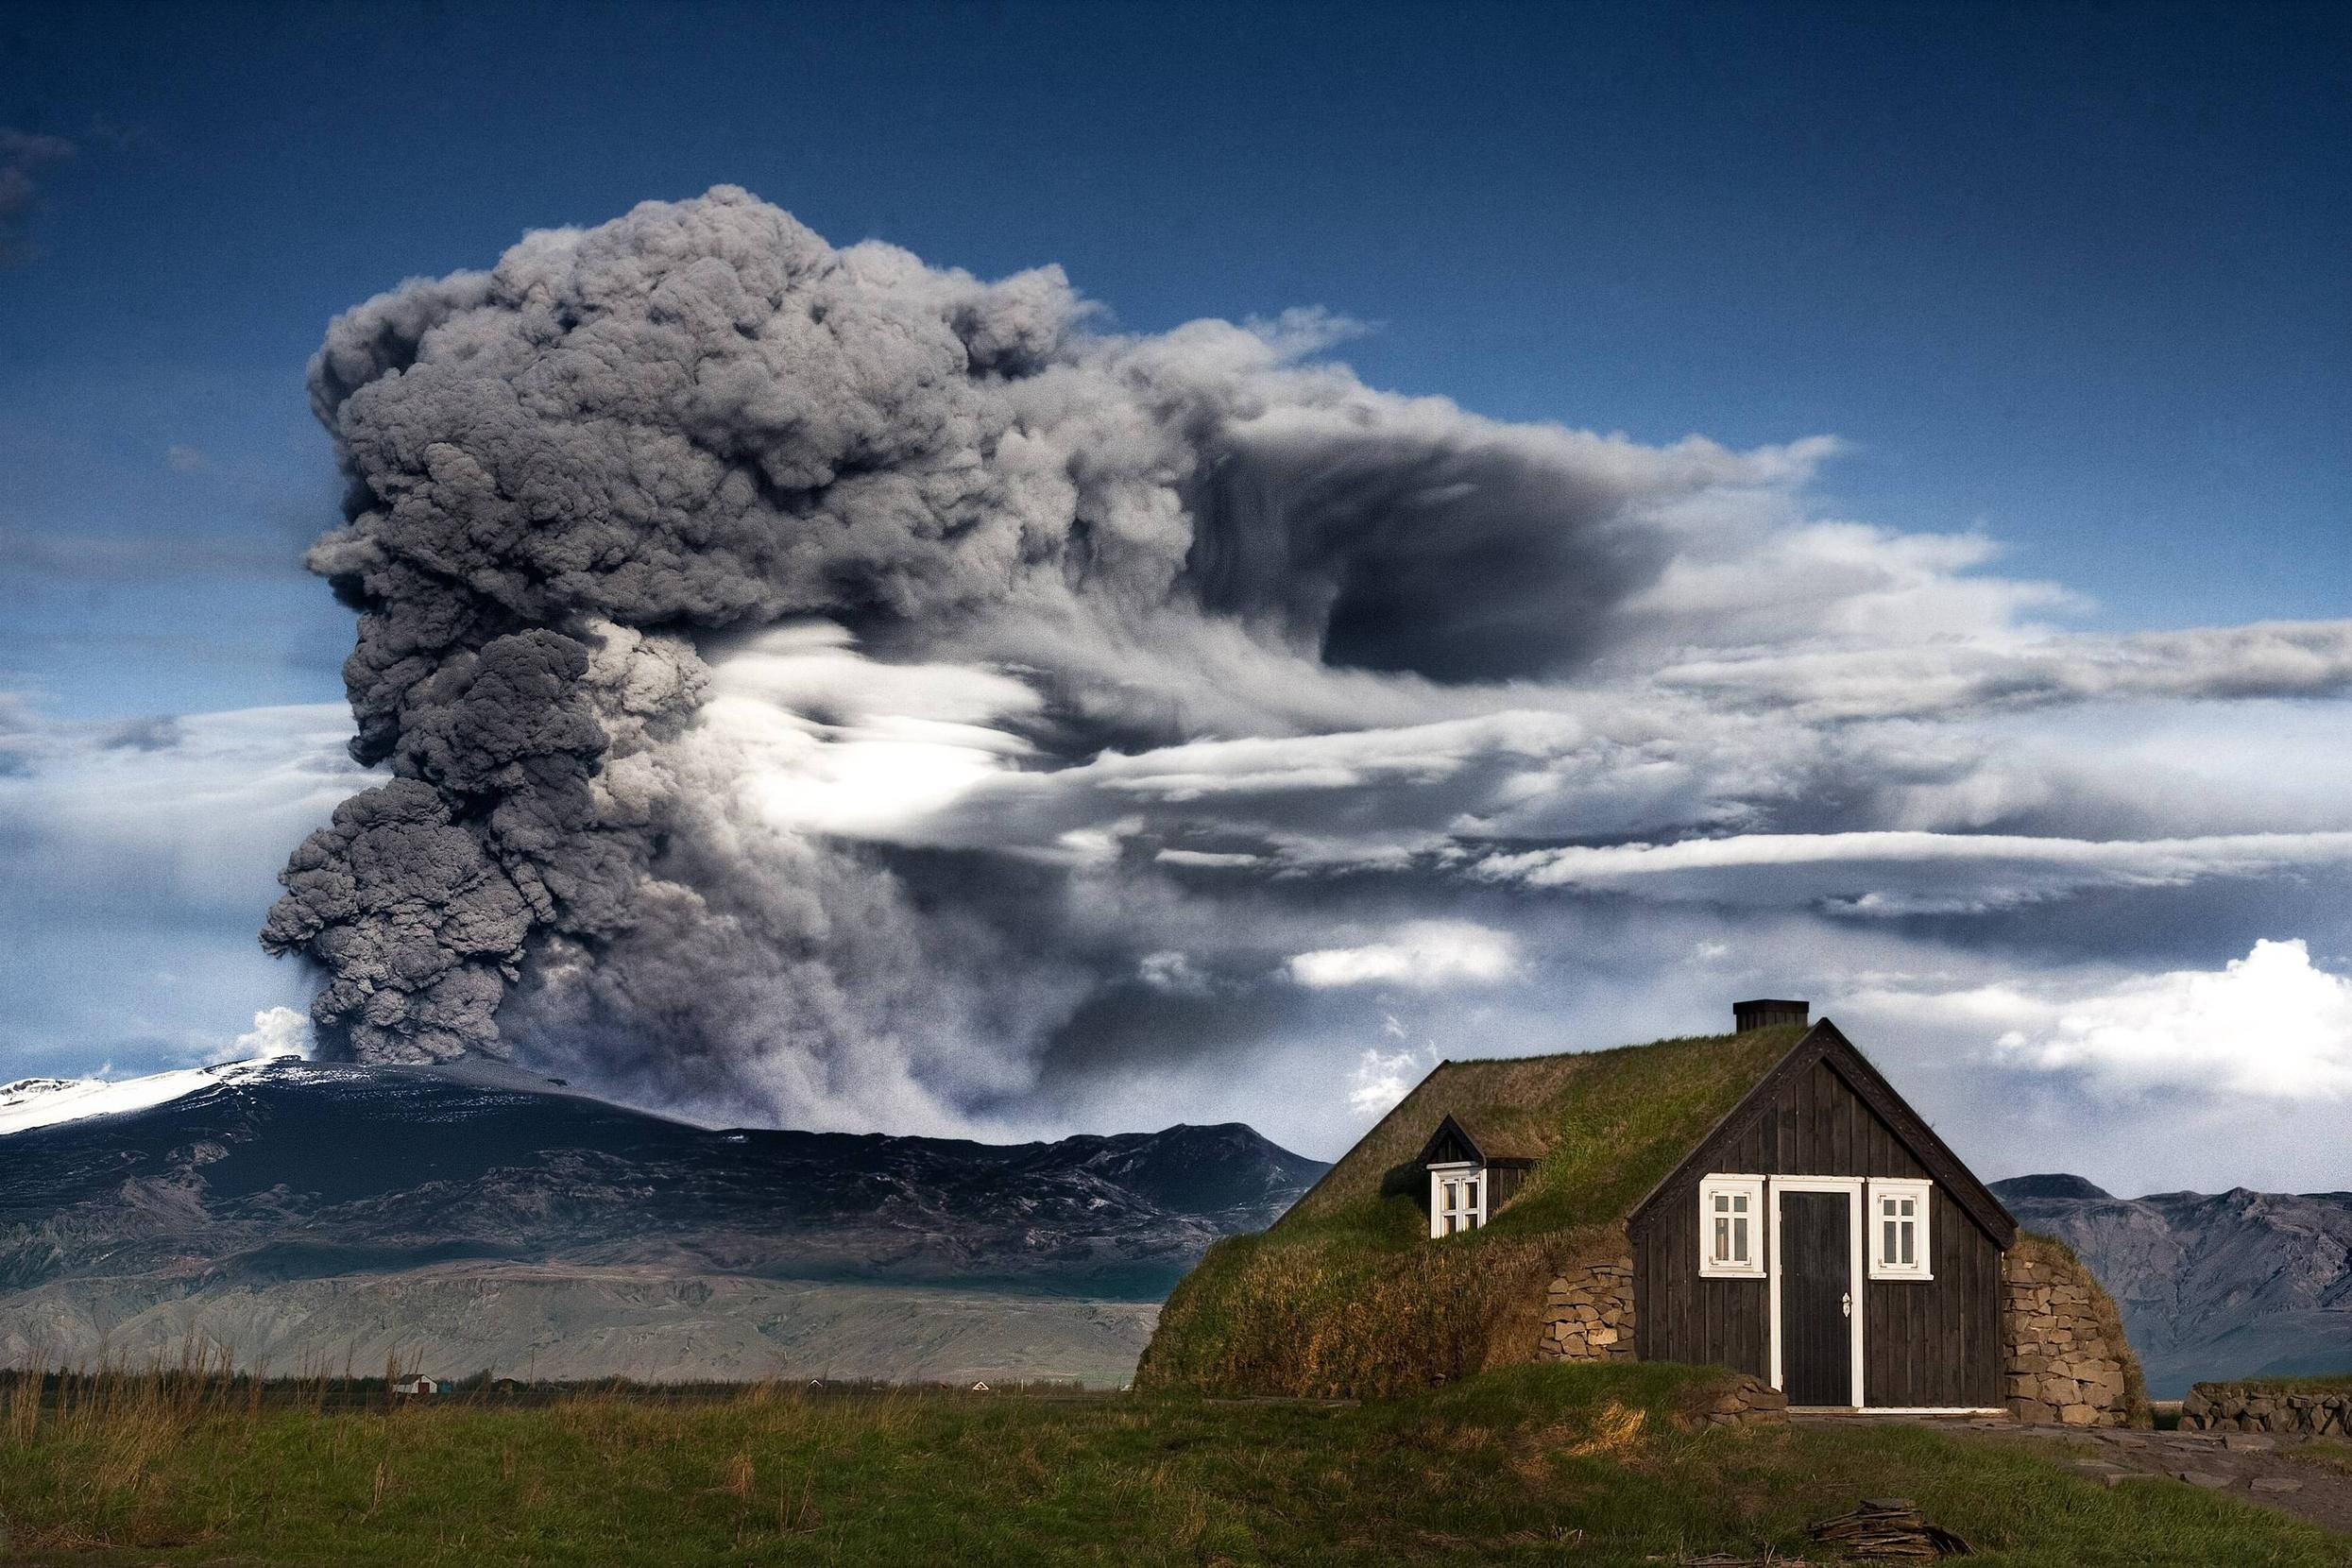 Icelandic volcano eruption, (Image courtesy of Imgur: The magic of the Internet)